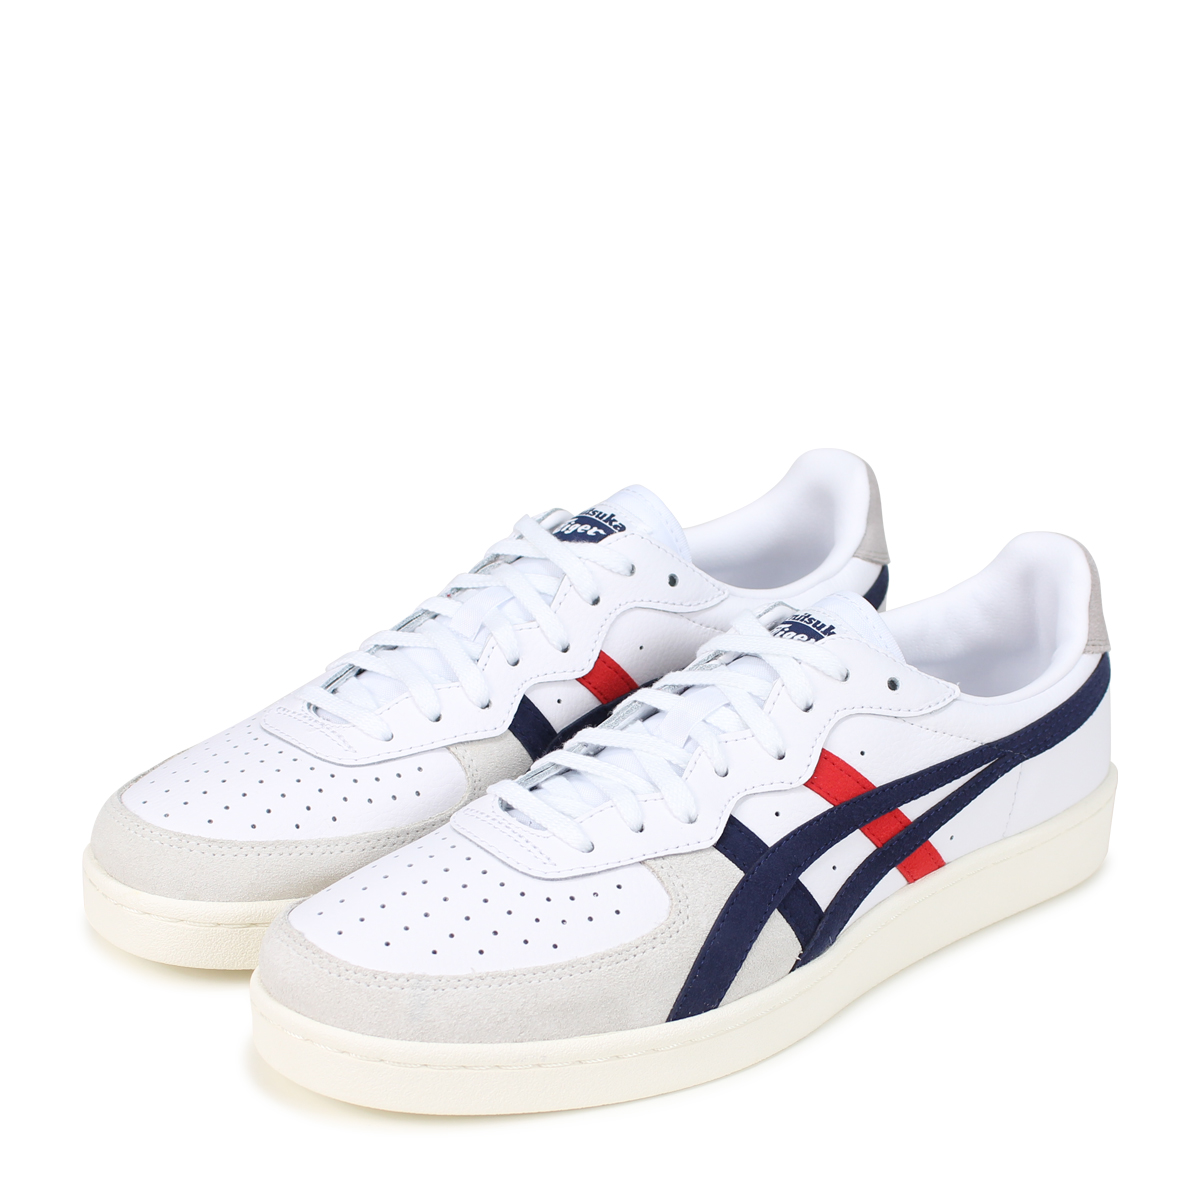 info for a3546 246d2 Onitsuka Tiger GSM Onitsuka Thailand ghazi S M men sneakers TH5K2Y-100  white [8/2 Shinnyu load] [187]